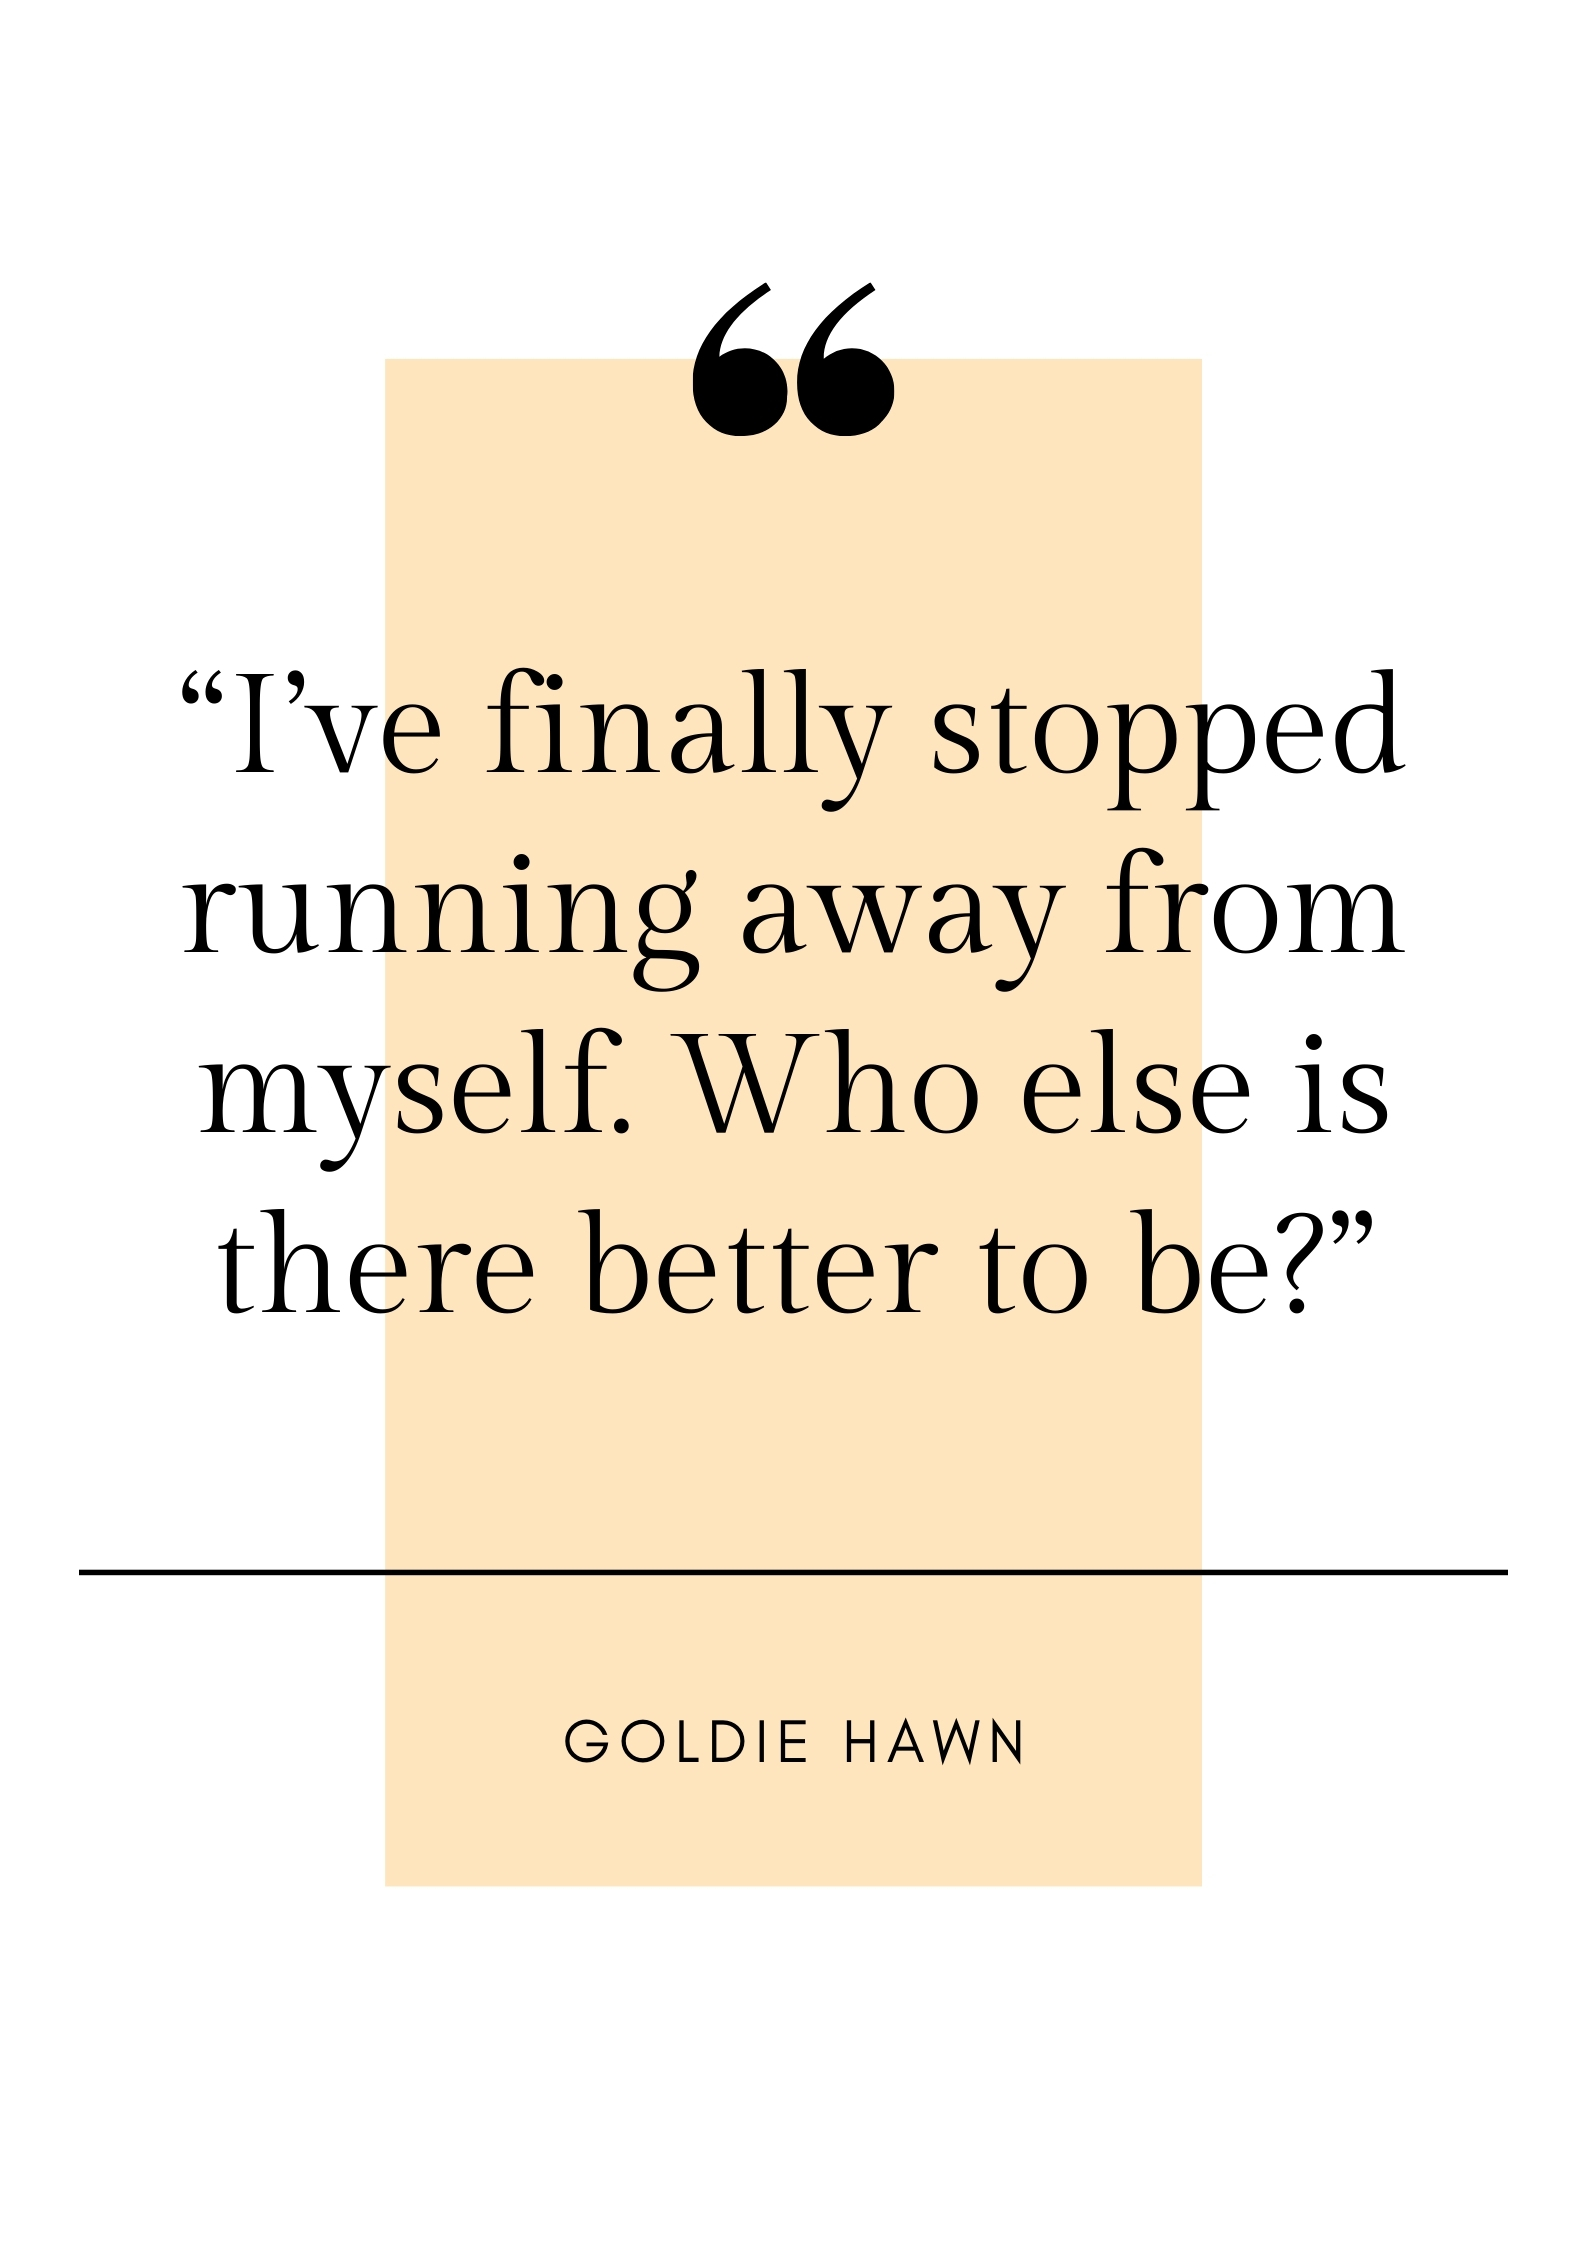 goldie hawn quote